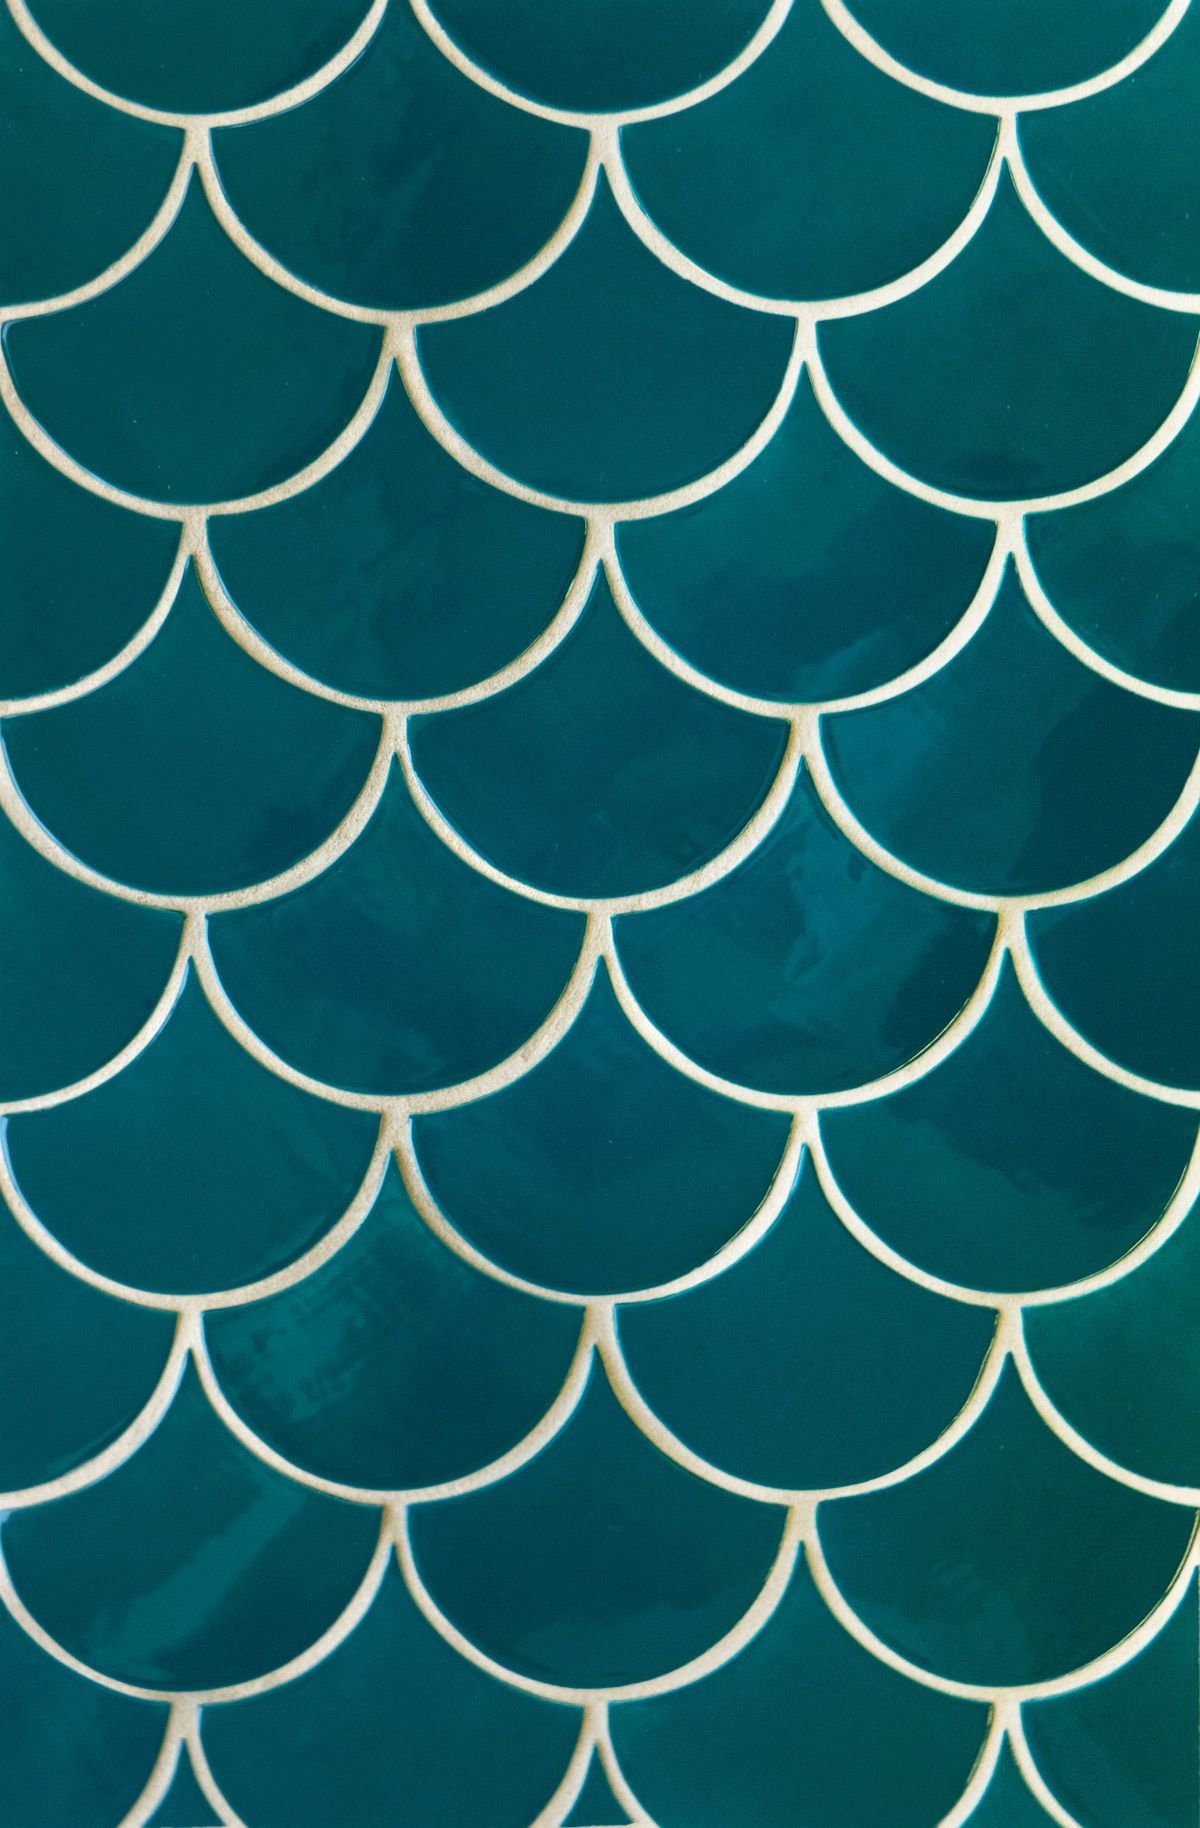 Moroccan Fish Scales | Moroccan, Scale and Mosaics